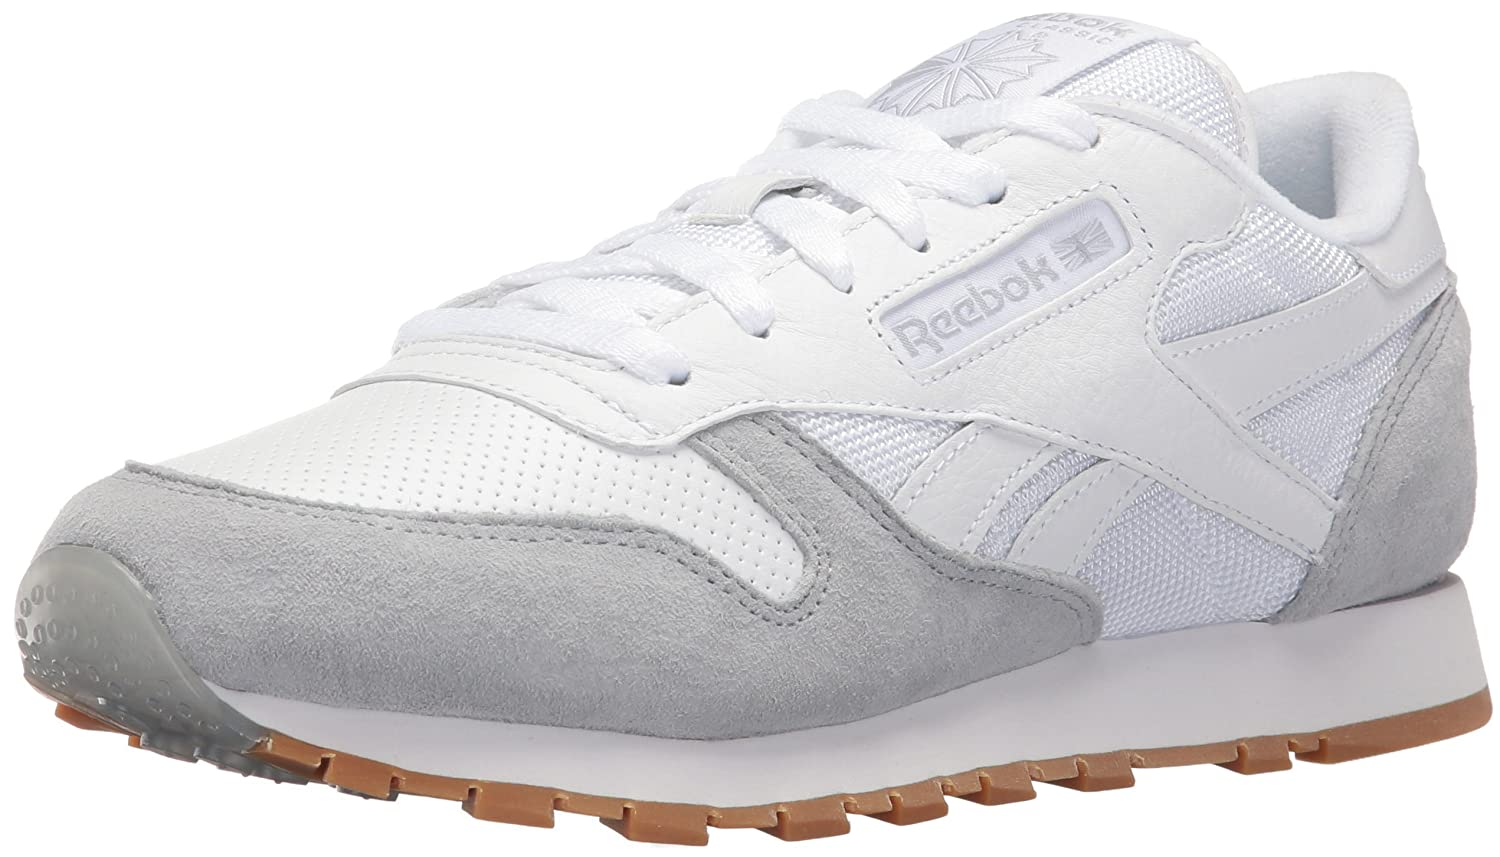 Reebok Women's CL Leather Spp Fashion Sneaker B01GEKX19Q 8.5 B(M) US|White/Cloud Grey/Black